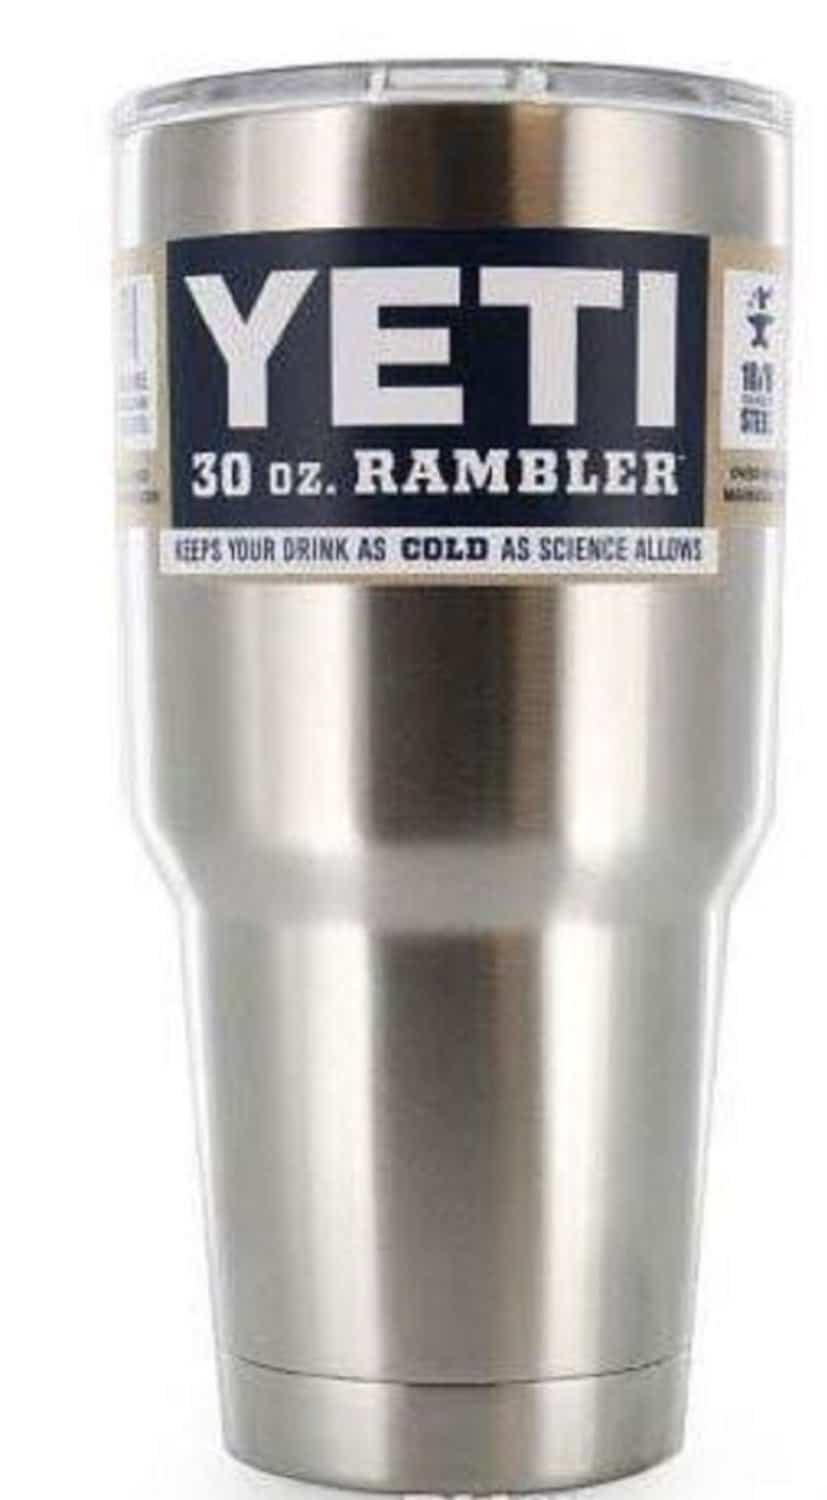 Yeti Cup Prices >> YETI Rambler 30 oz Tumbler - LOWEST PRICE!! | Kasey Trenum